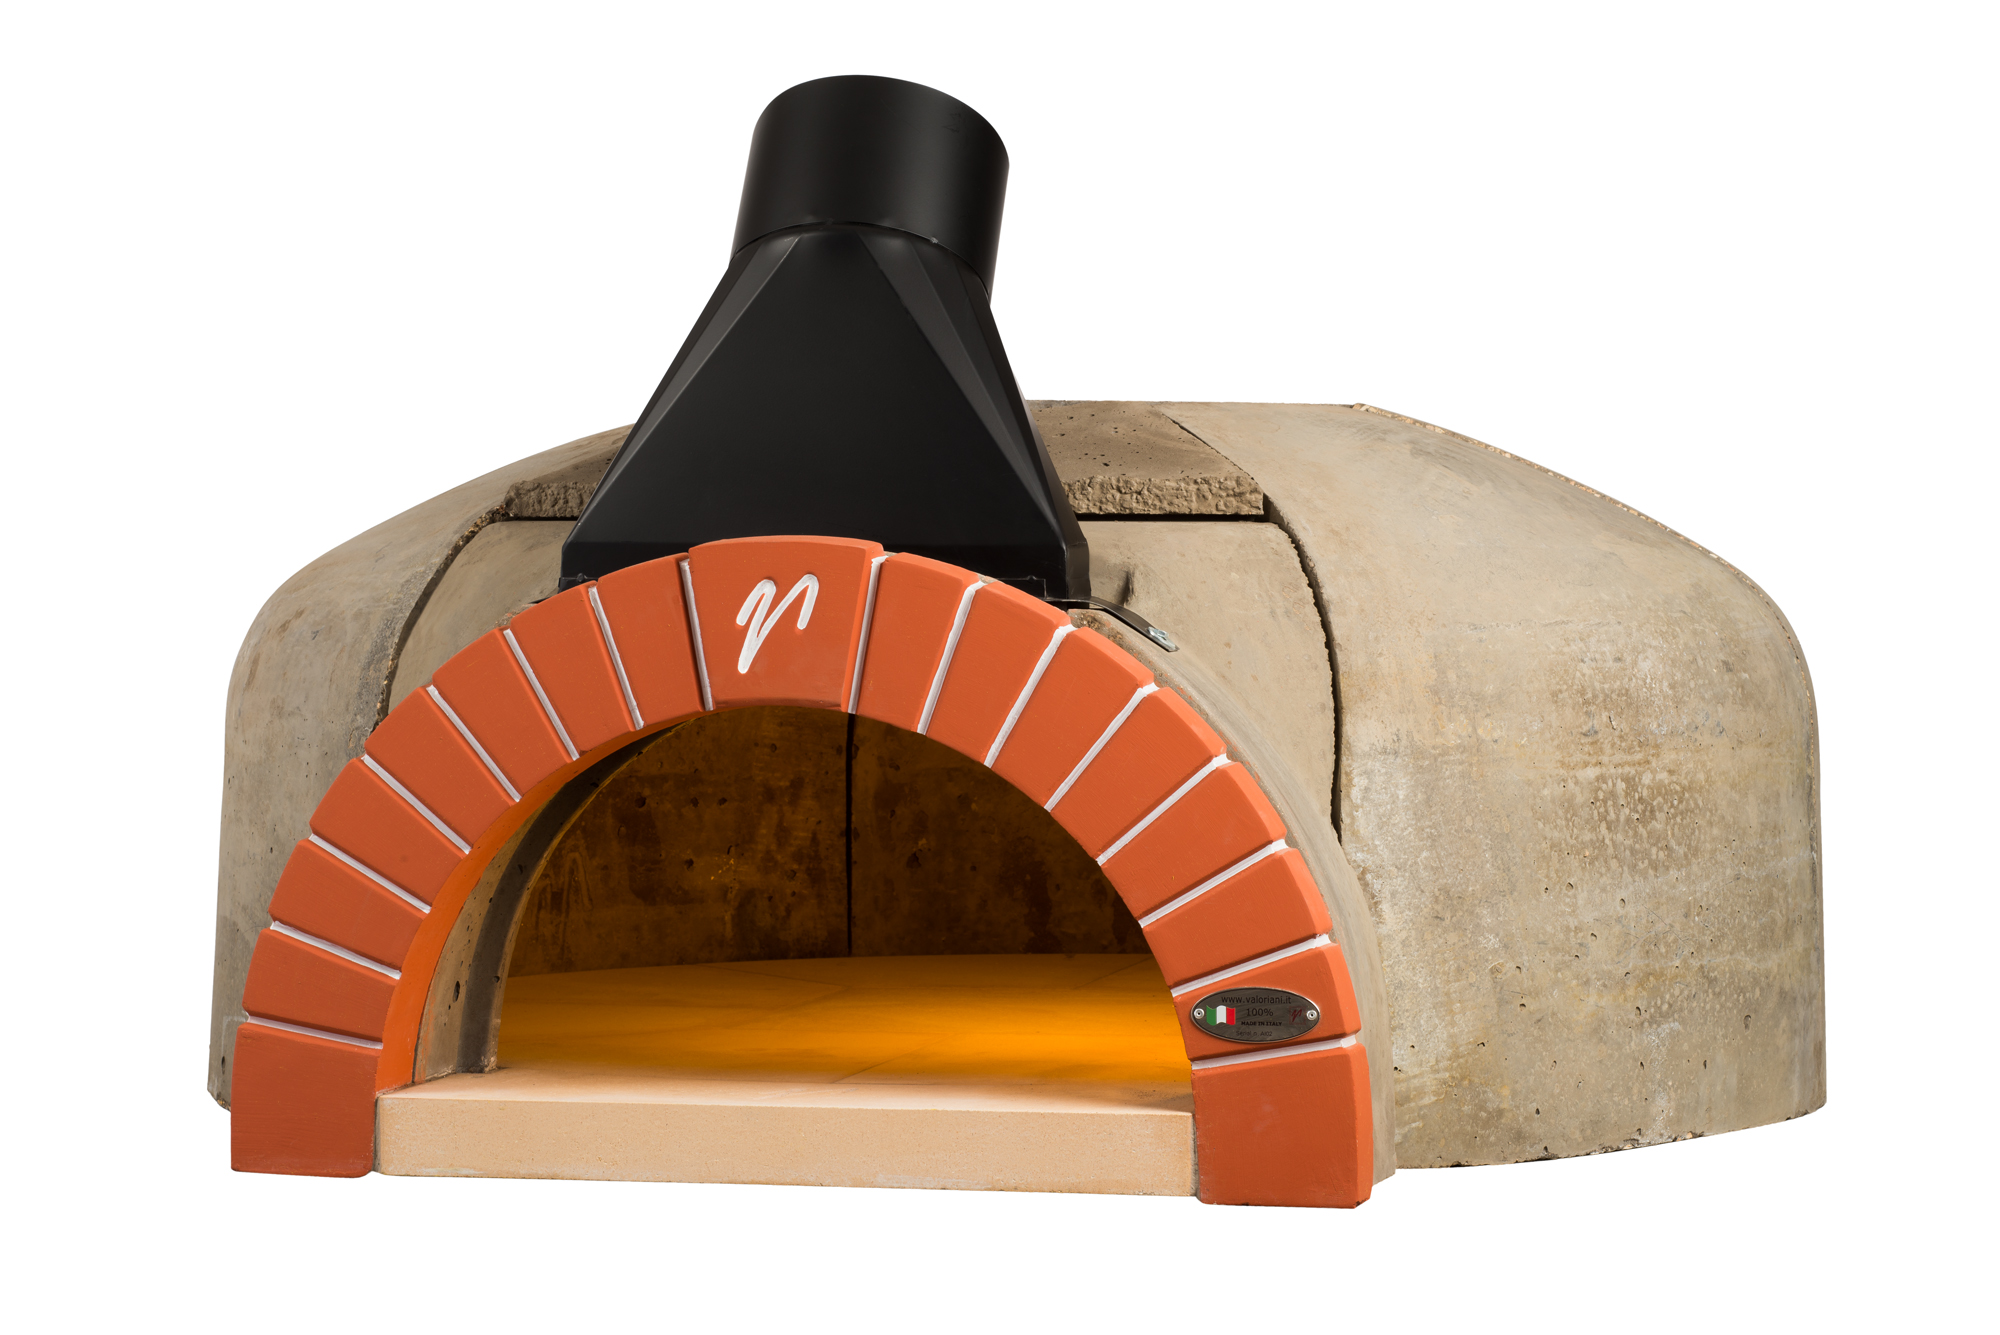 GR140 wood fired oven